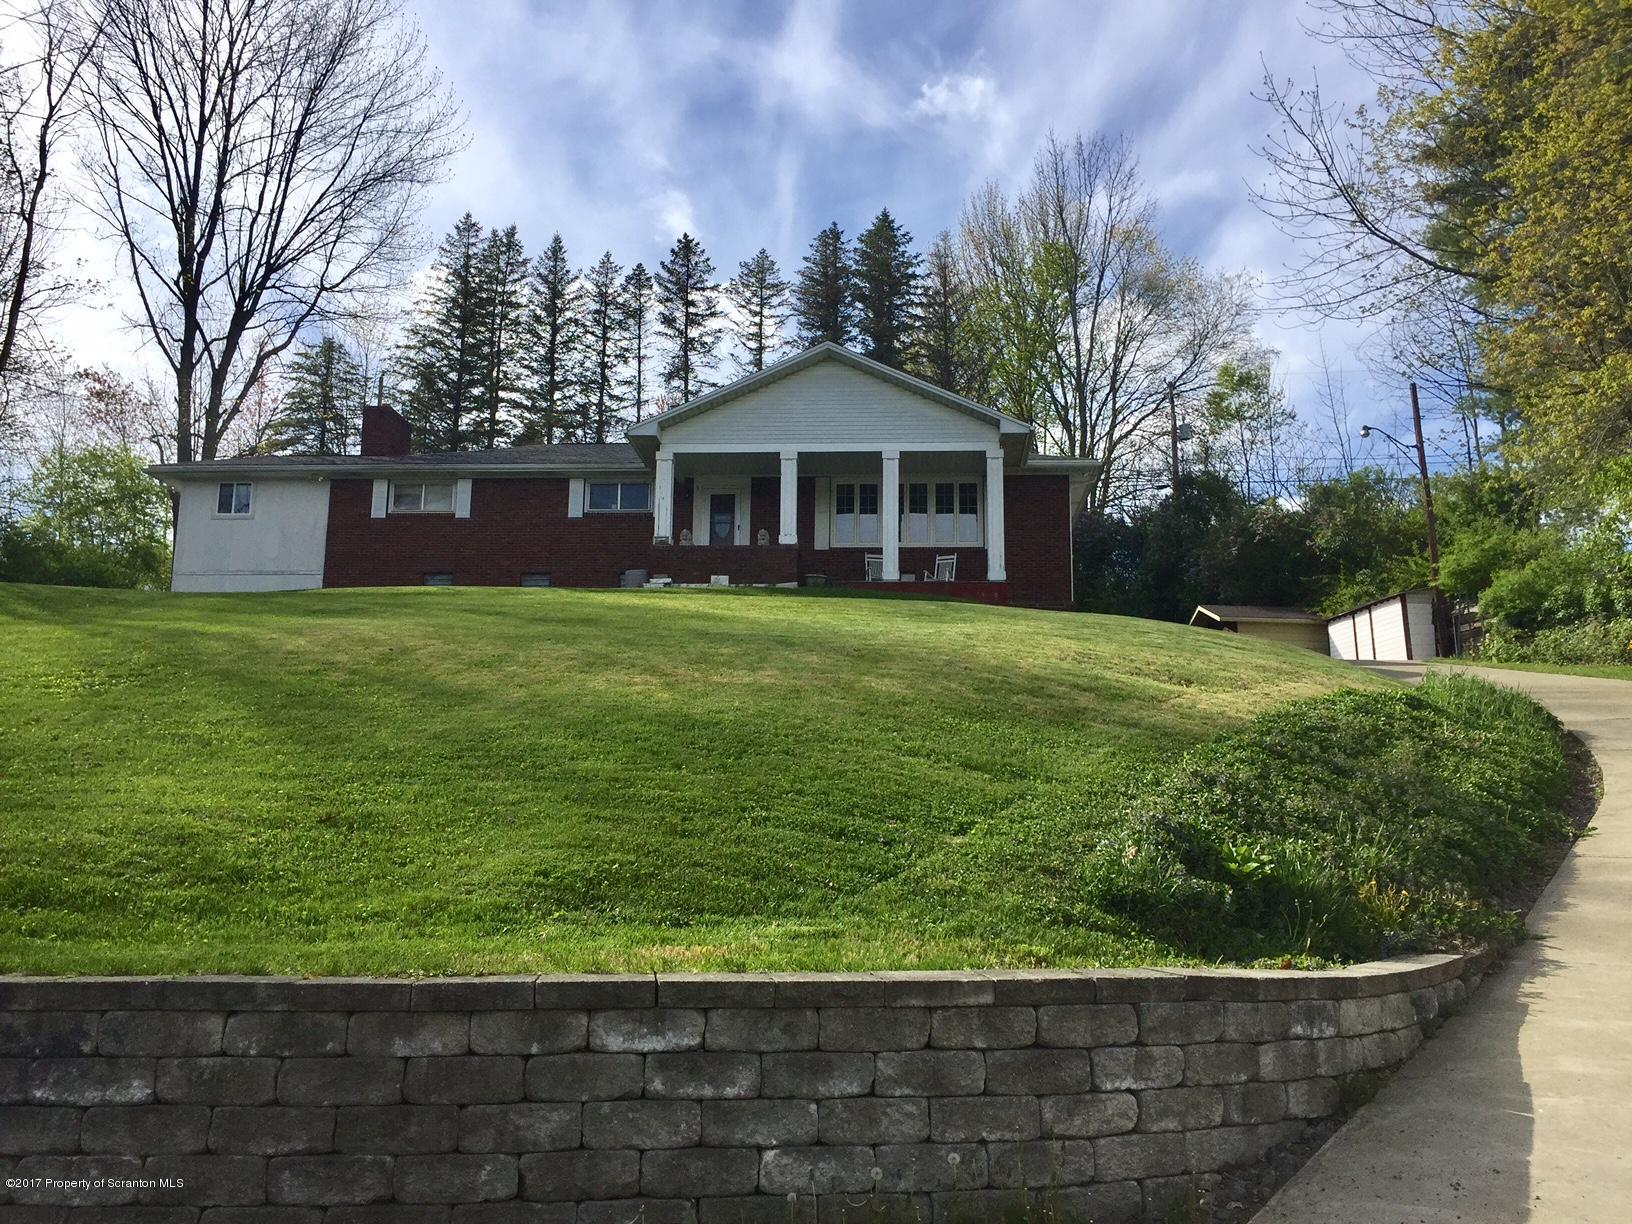 121 Baylor Rd, Nicholson, Pennsylvania 18446, 4 Bedrooms Bedrooms, 8 Rooms Rooms,3 BathroomsBathrooms,Single Family,For Sale,Baylor,19-2216